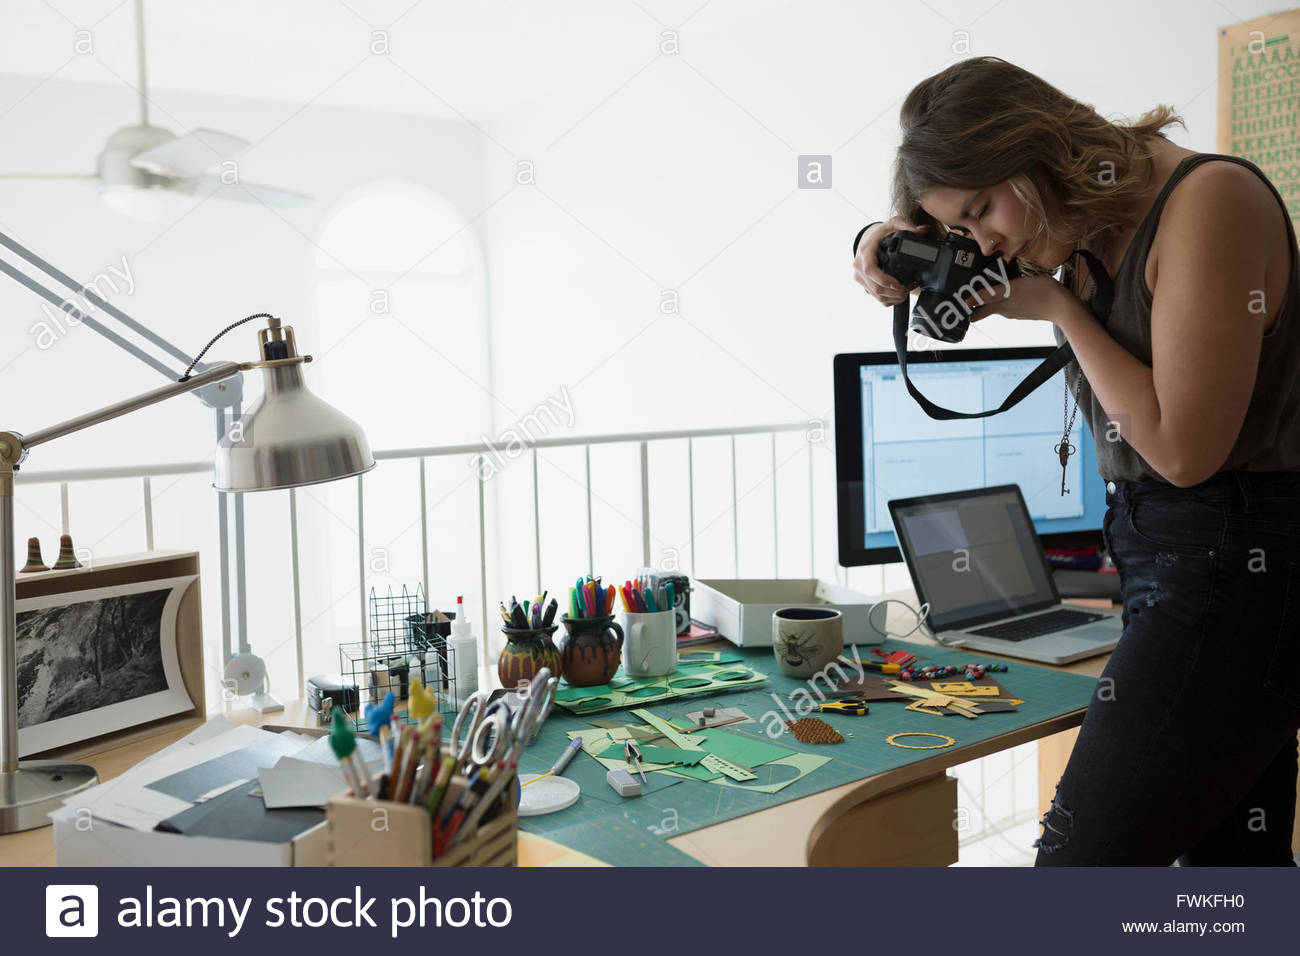 Craftswoman photographing pieces on desk in home office - Stock Image